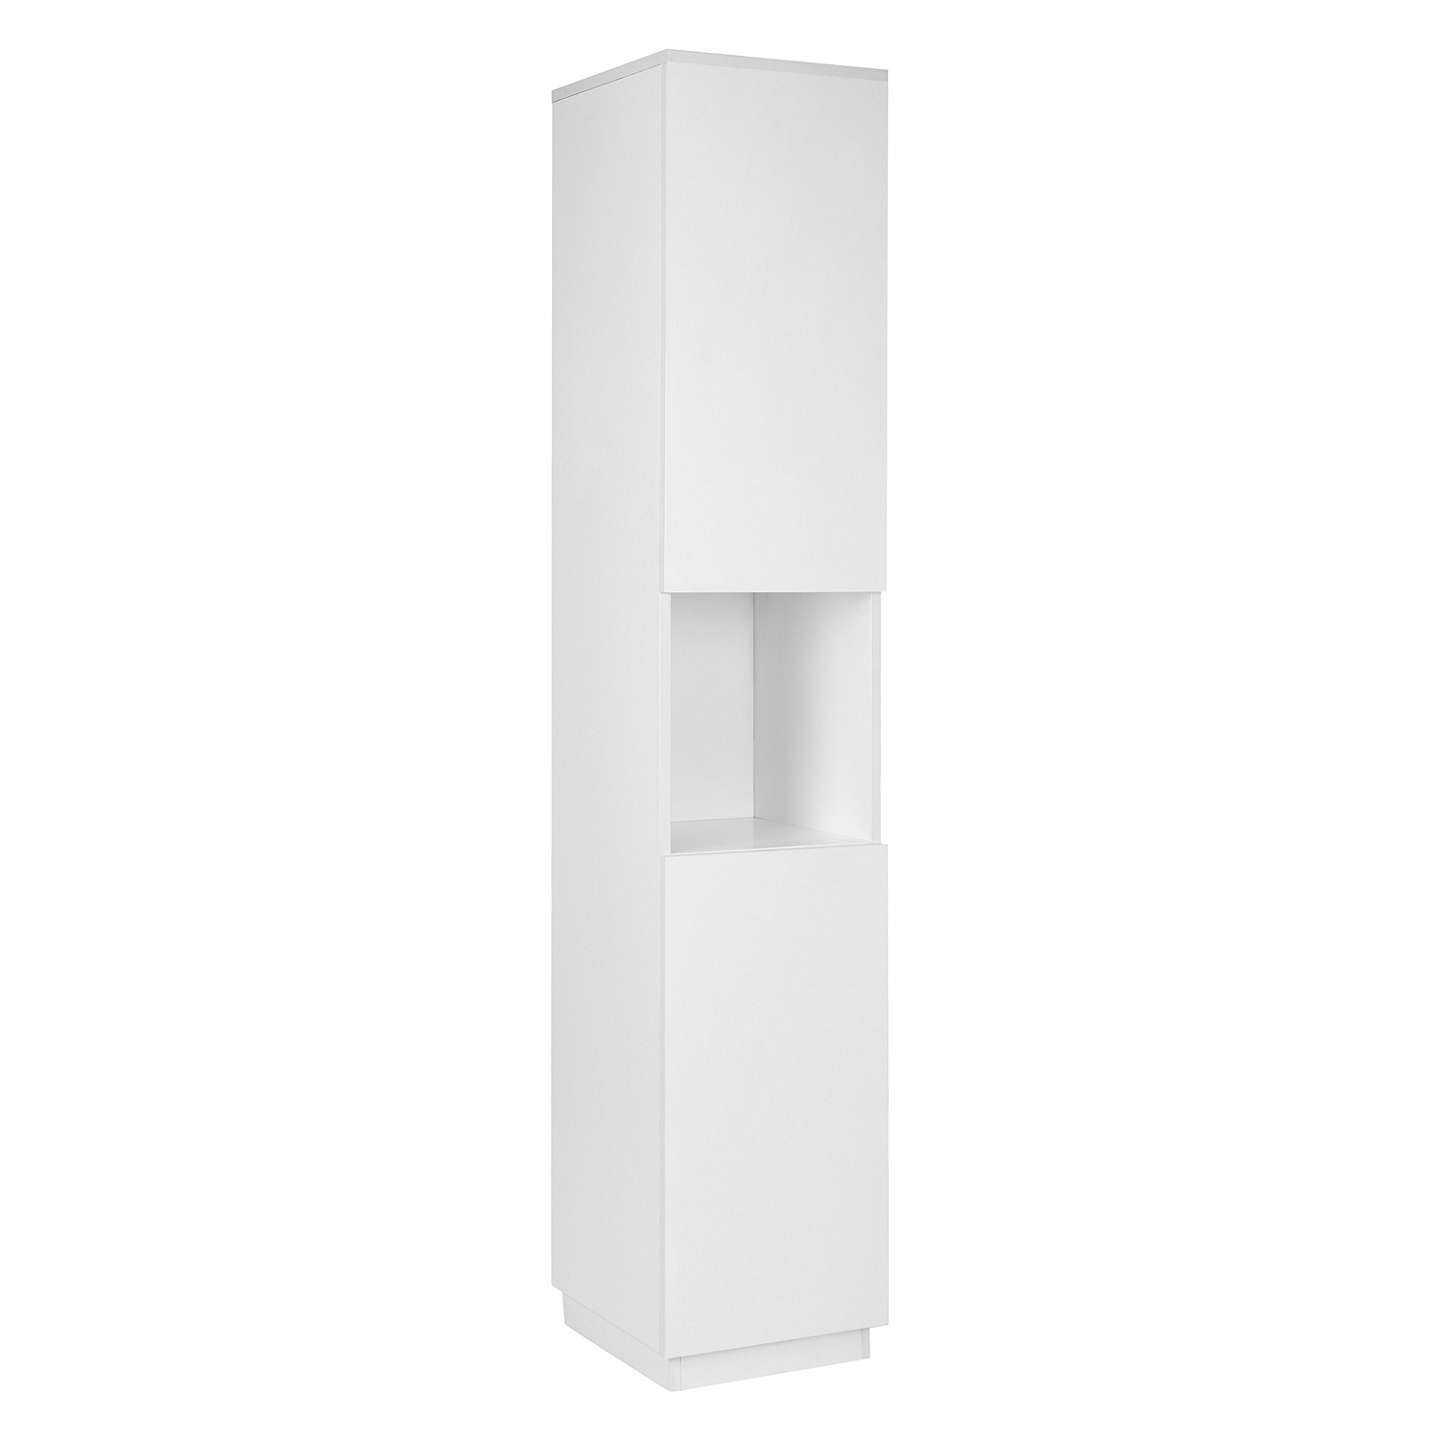 BuyHouse by John Lewis Equate Bathroom Tallboy Online at johnlewis.com ...